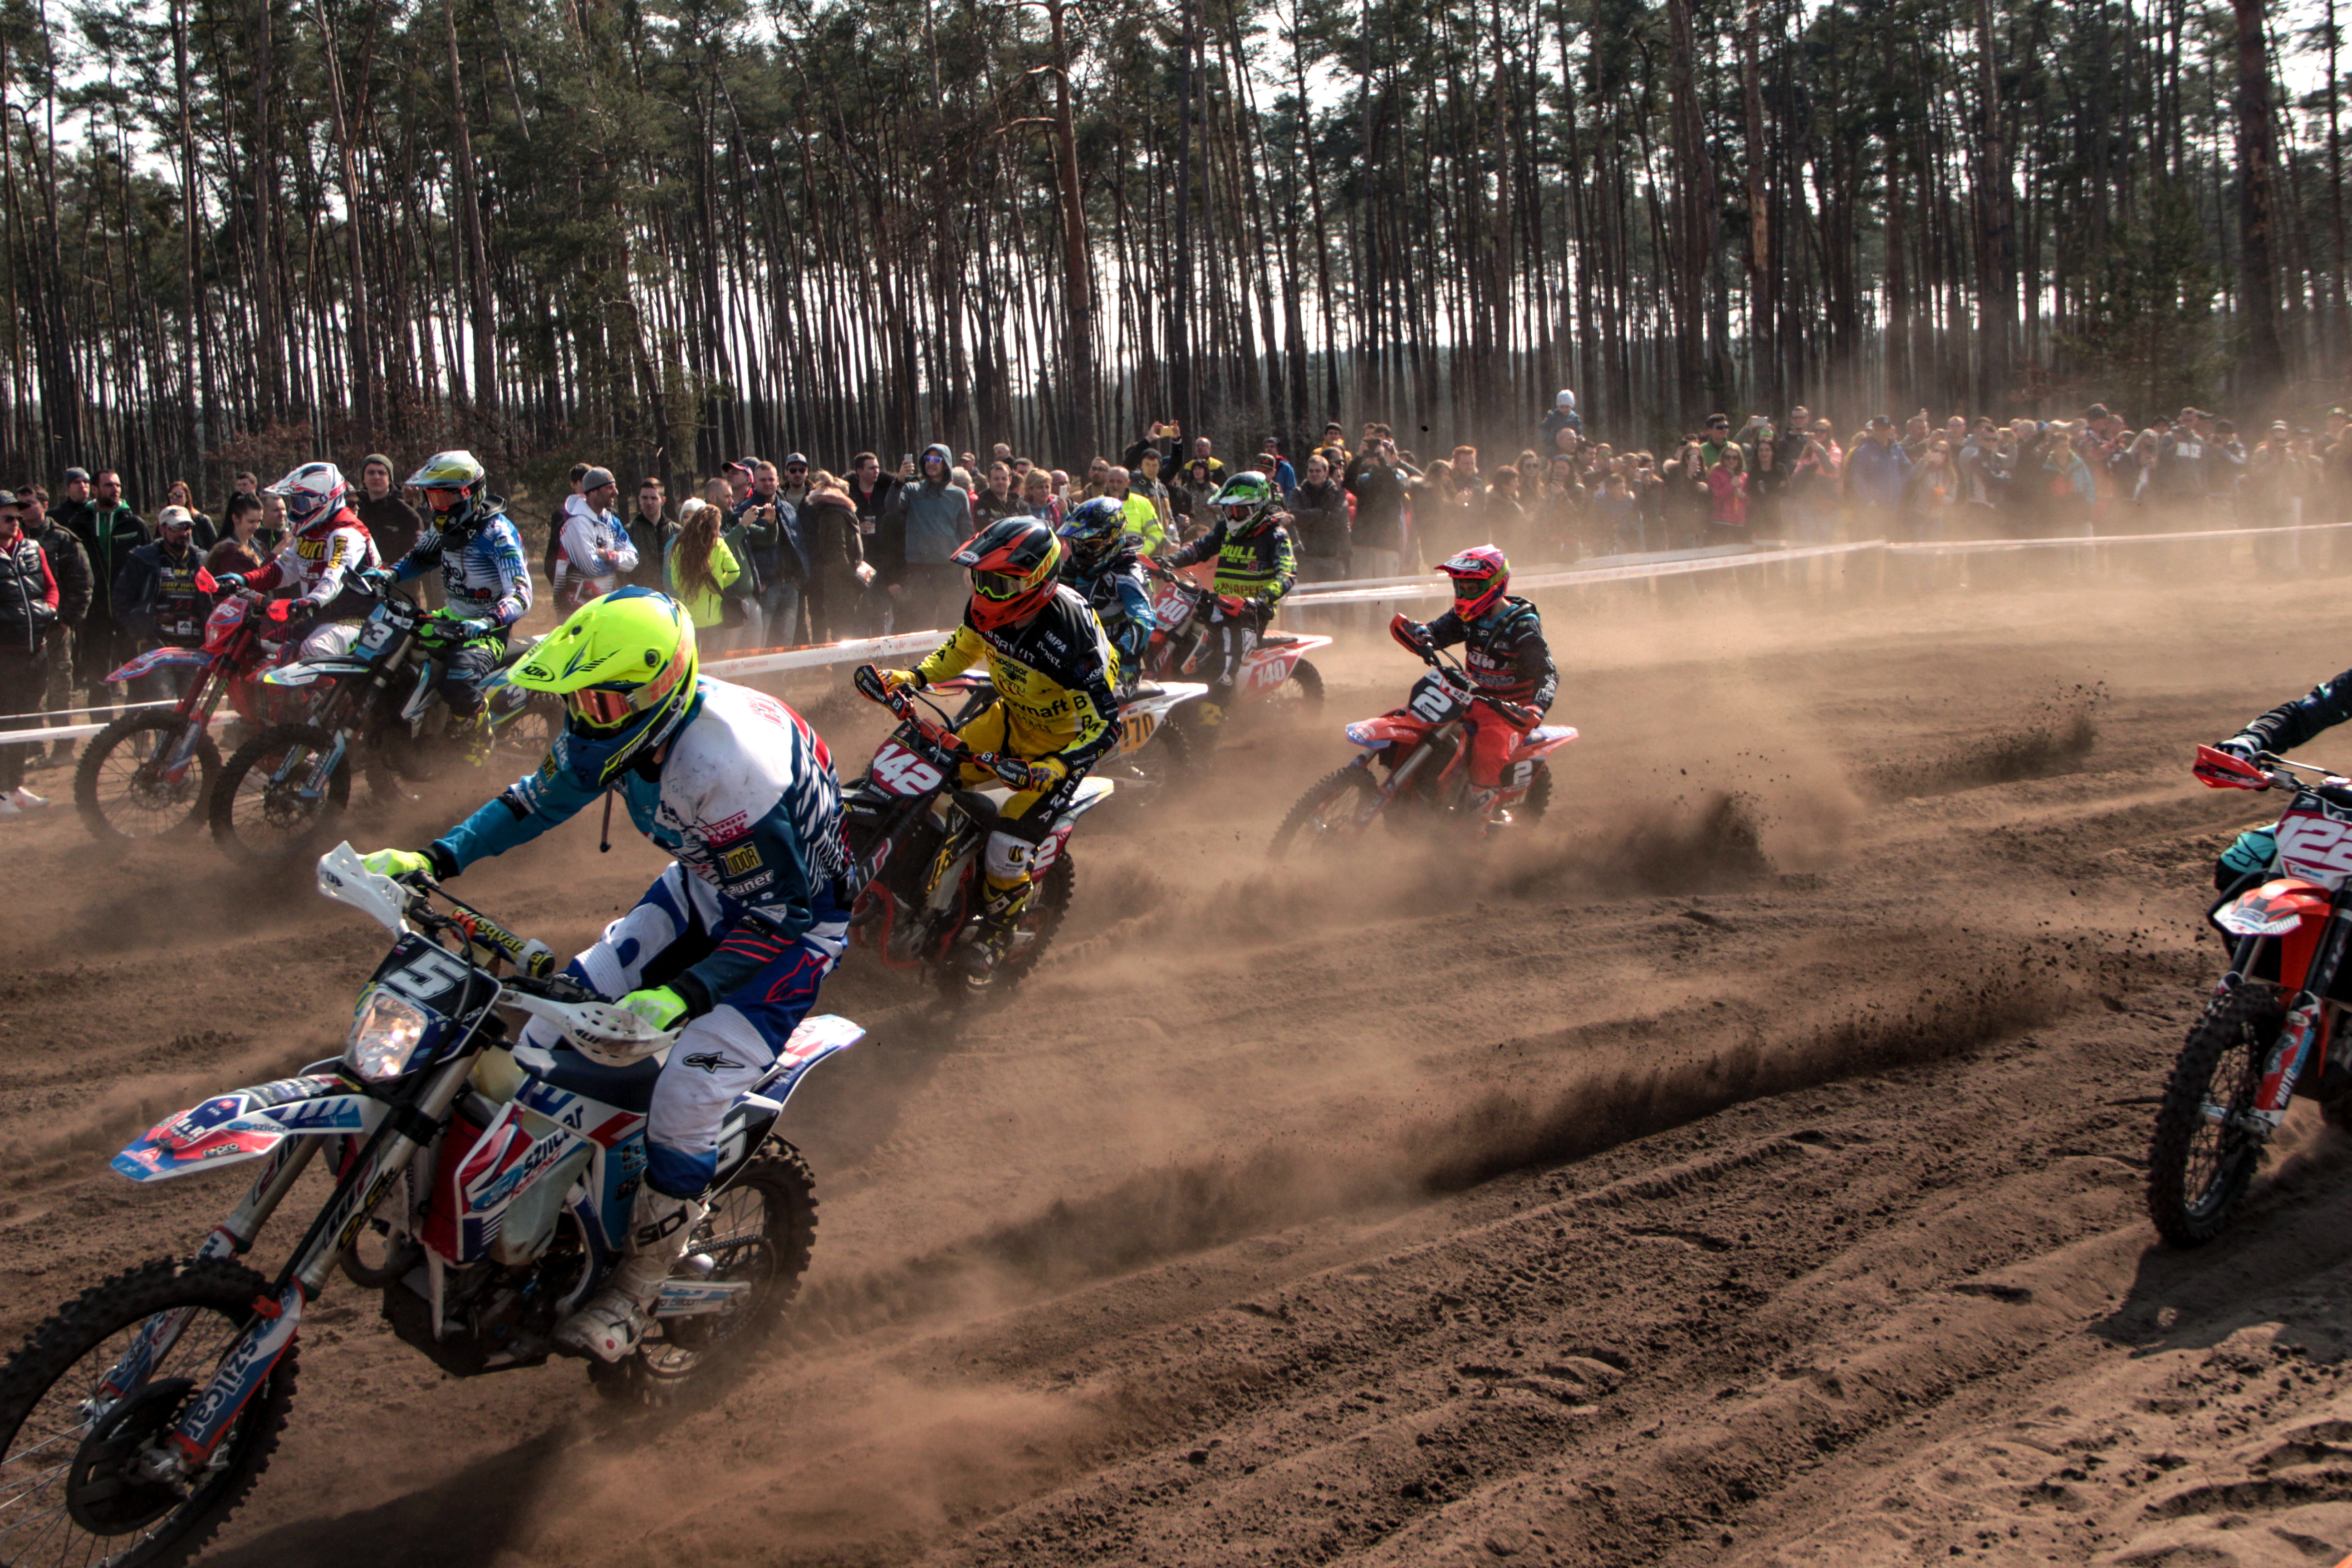 Group of People Watching Motocross